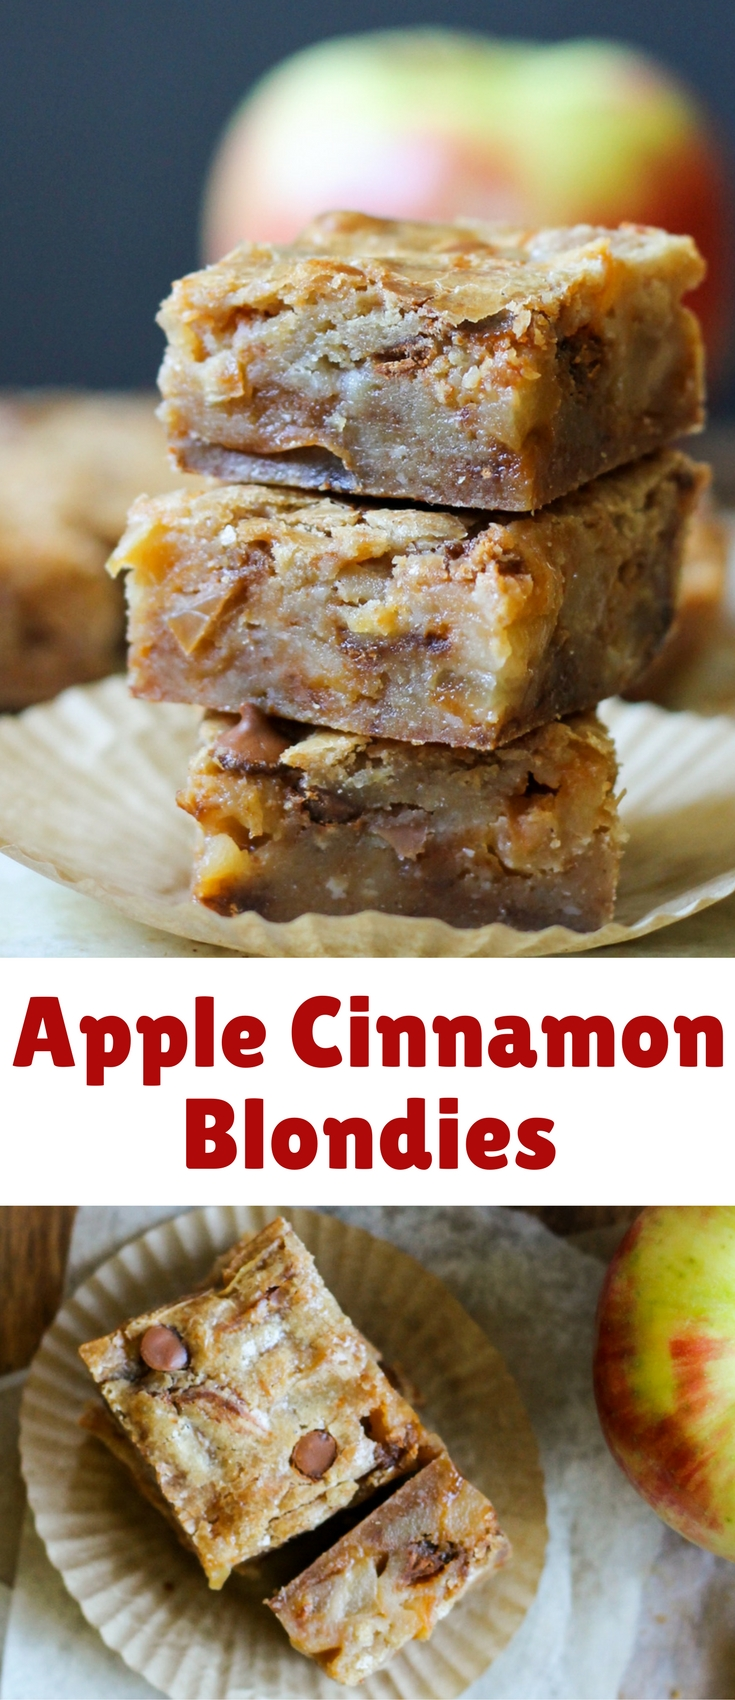 These Apple Cinnamon Blondies have sautéed apples and cinnamon chips for the ultimate portable fall treat!